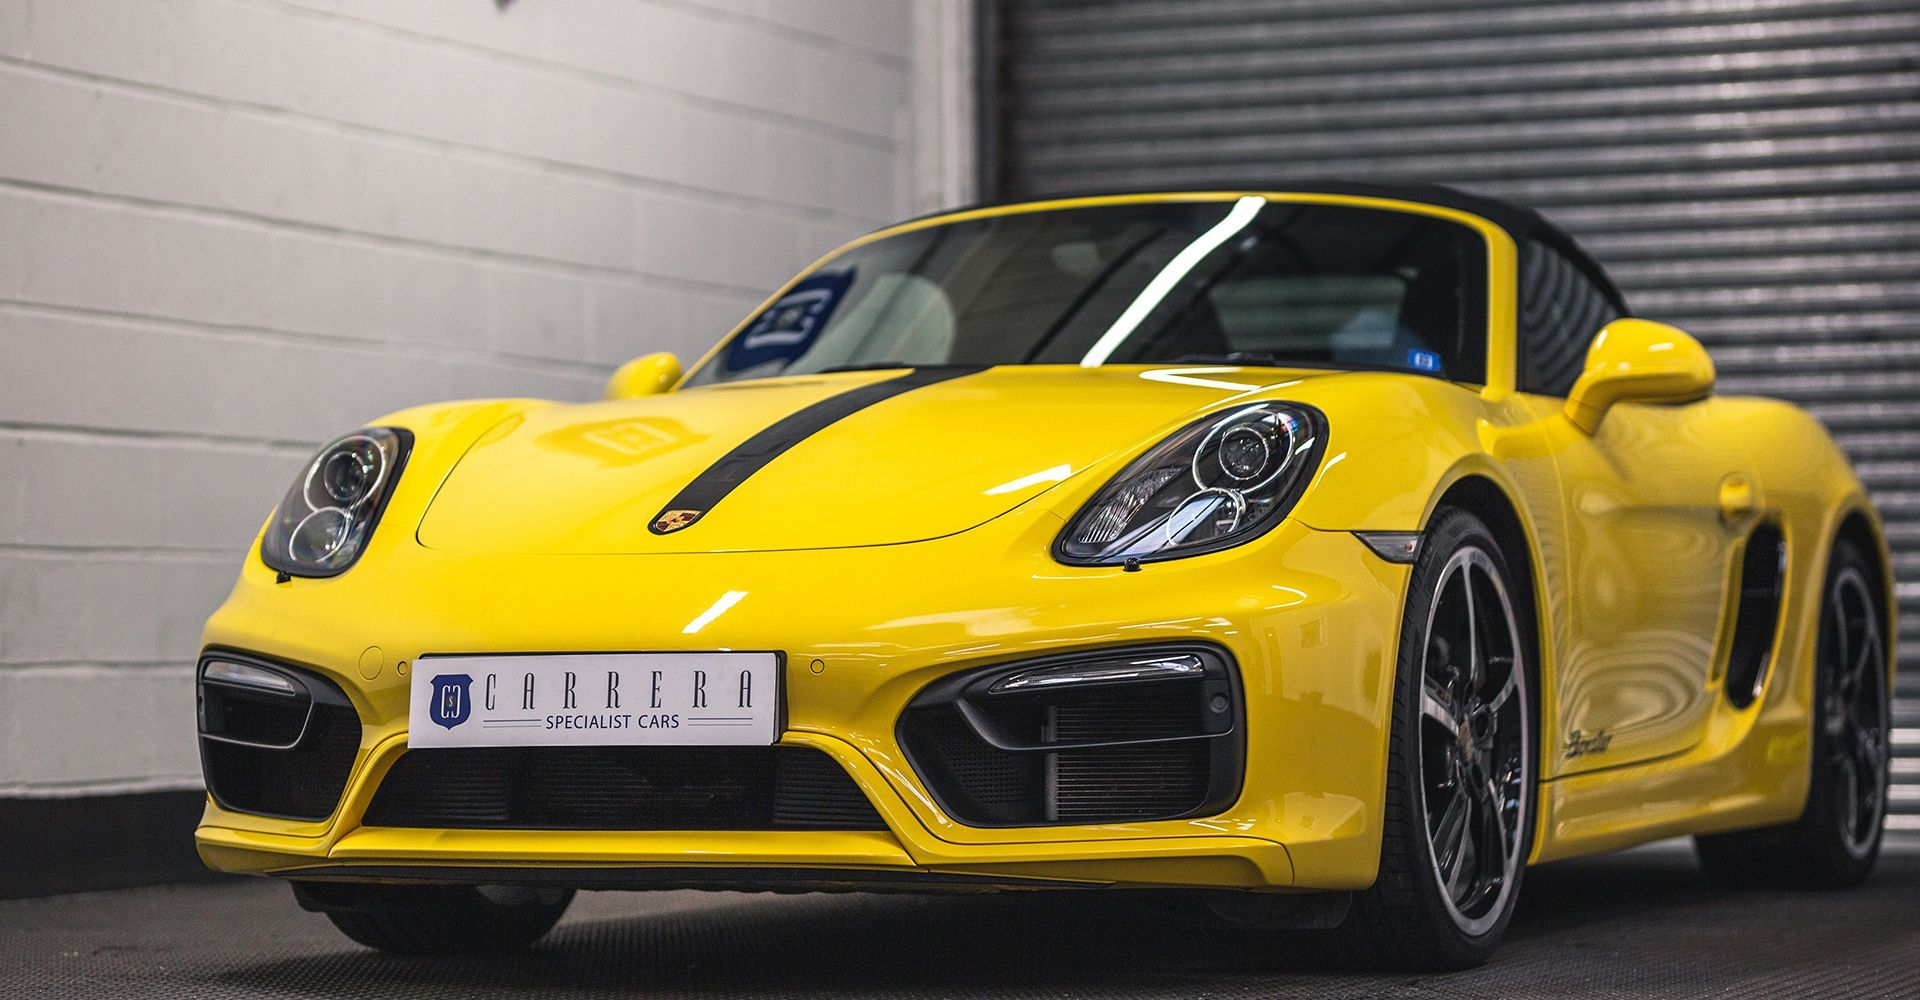 Carrera Specialist Cars Home Page Hero 5 Result -